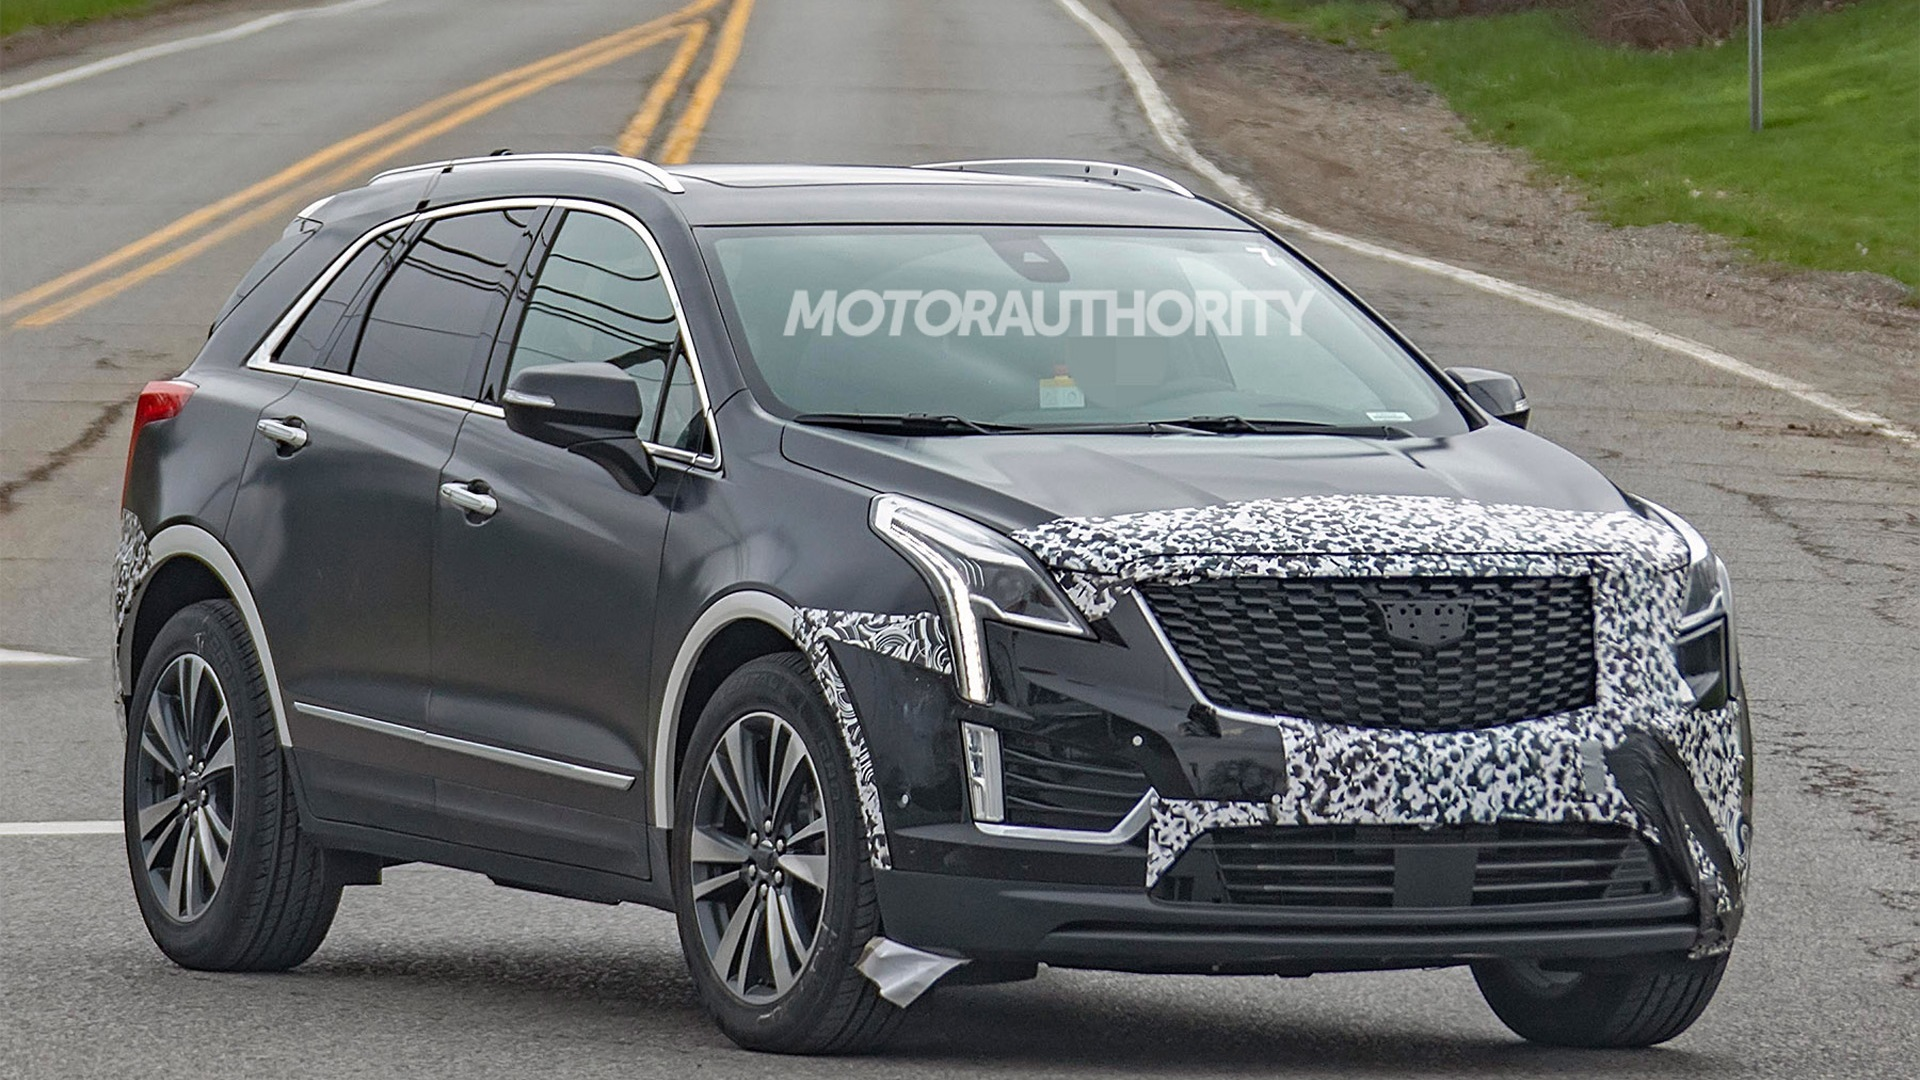 71 All New 2019 Spy Shots Cadillac Xt5 Model